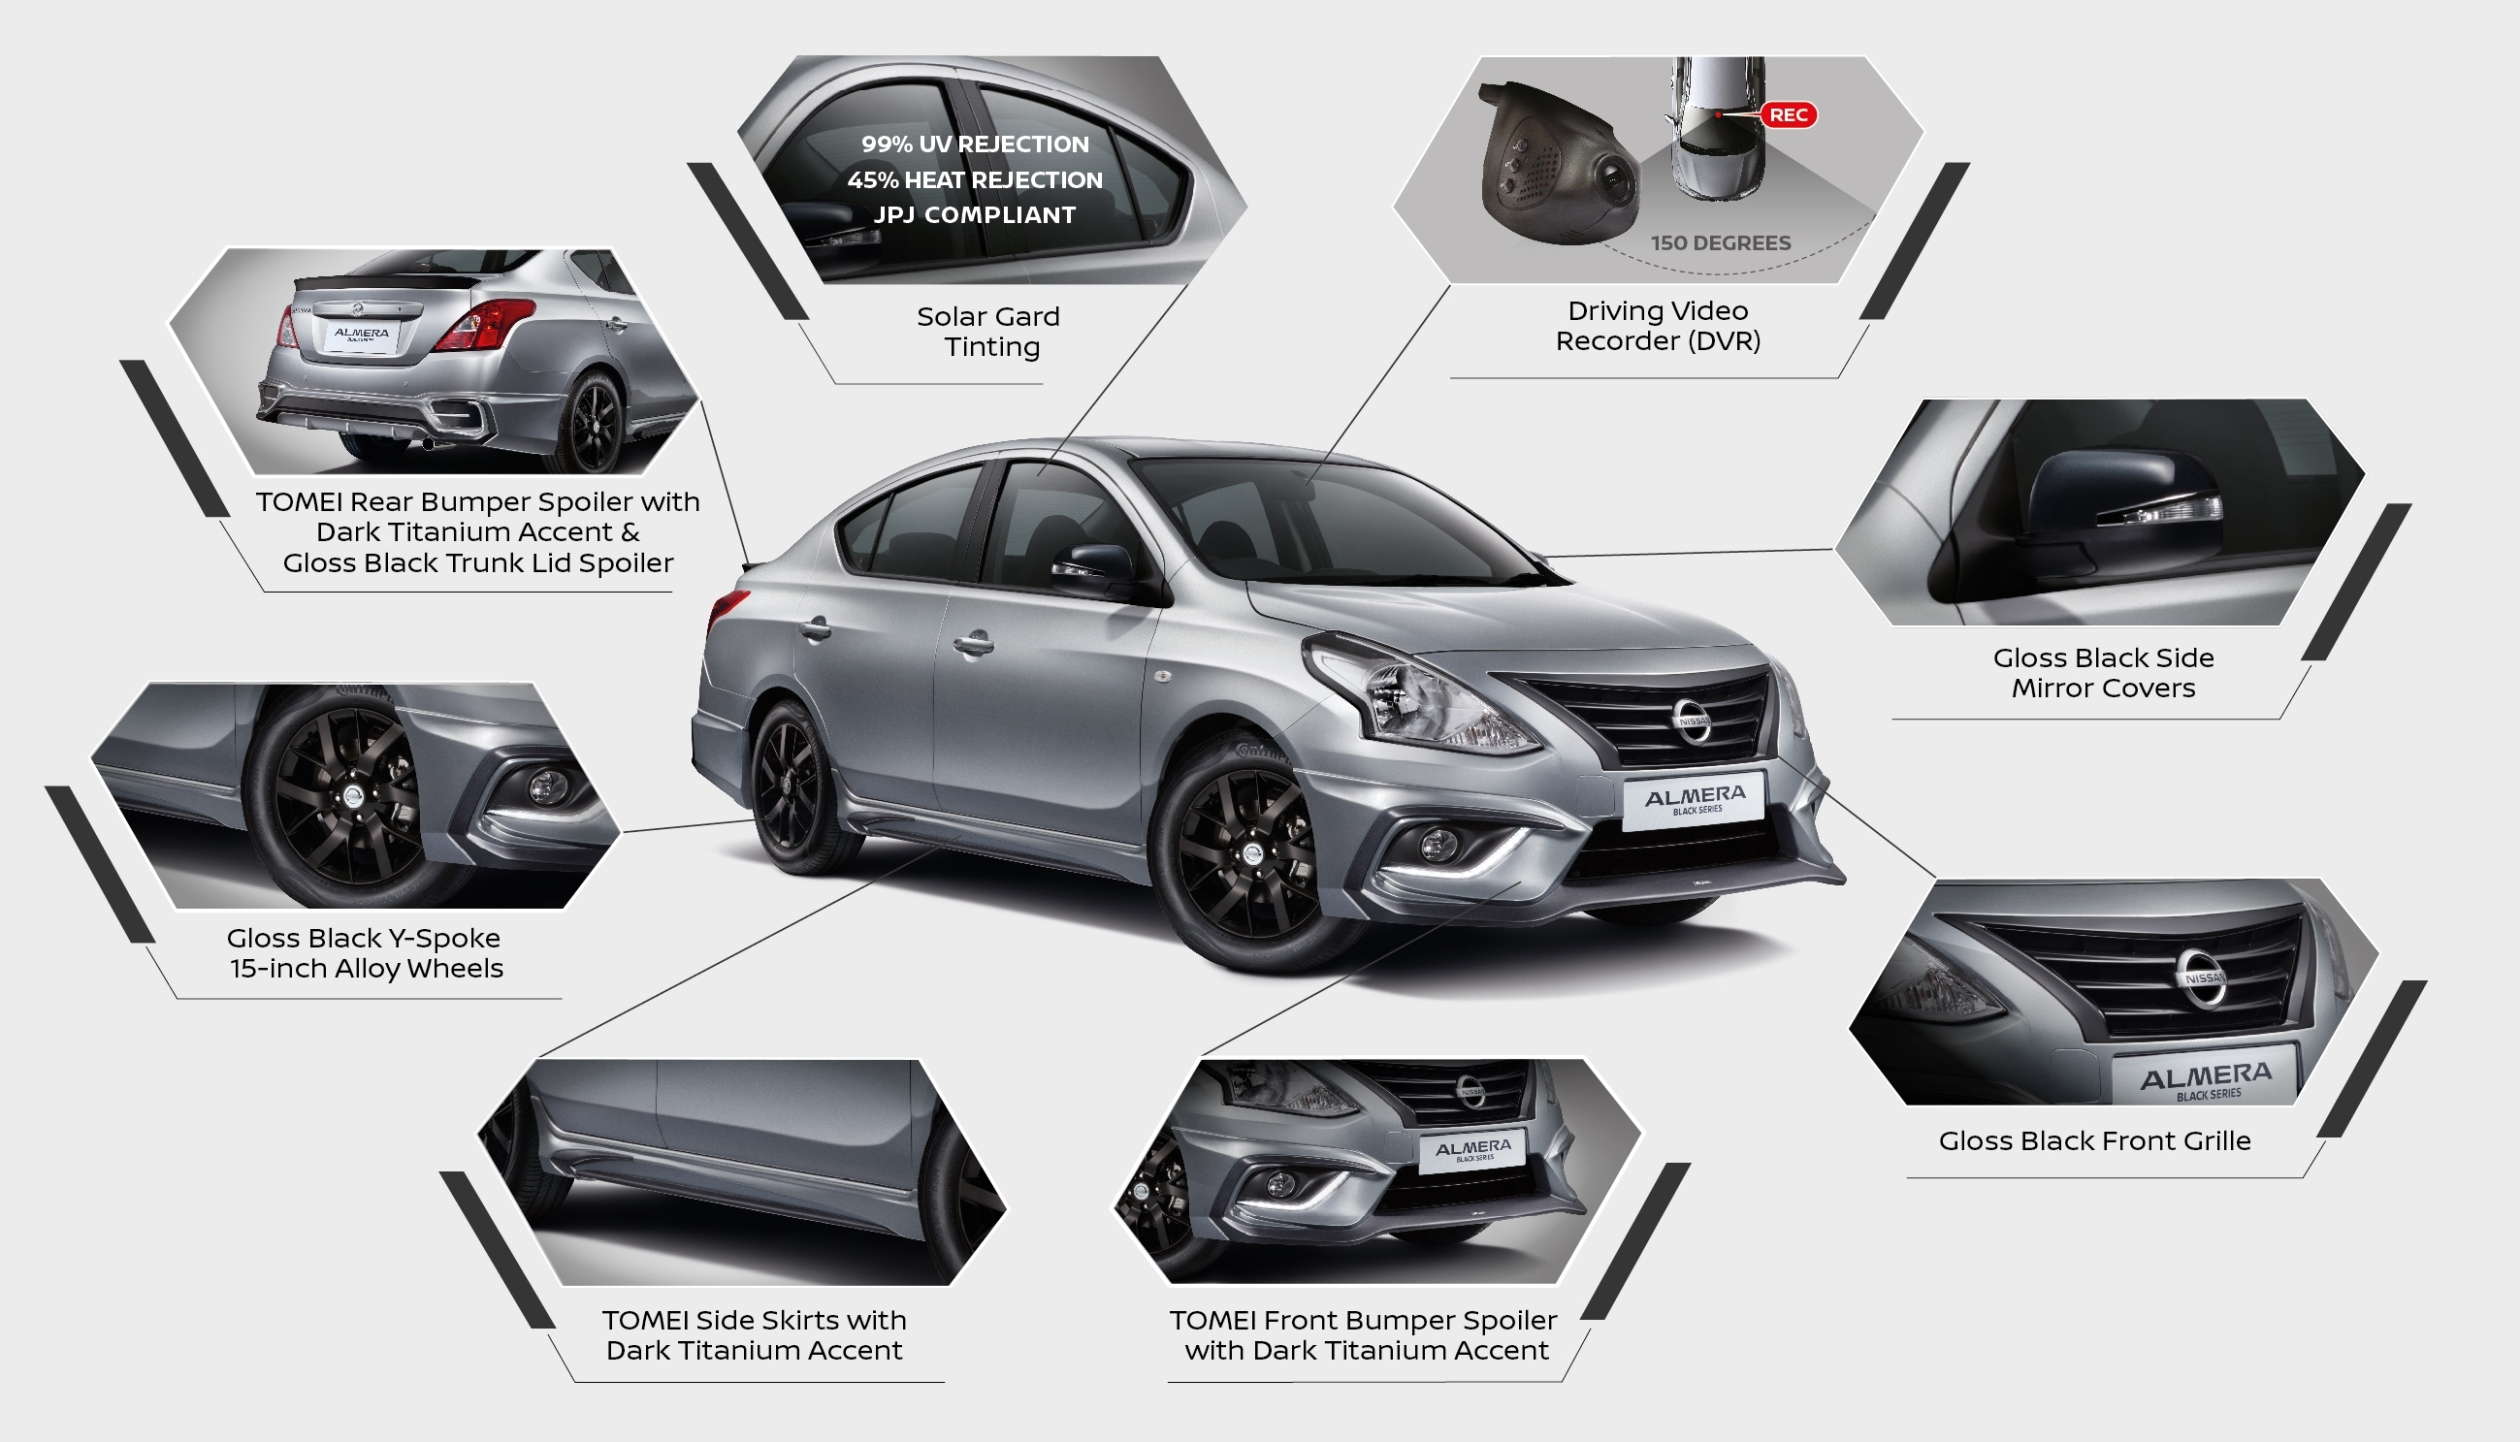 Etcm Introduces Nissan Almera 1 5 Black Series Priced Below Rm70 000 Roadshows Announced News And Reviews On Malaysian Cars Motorcycles And Automotive Lifestyle